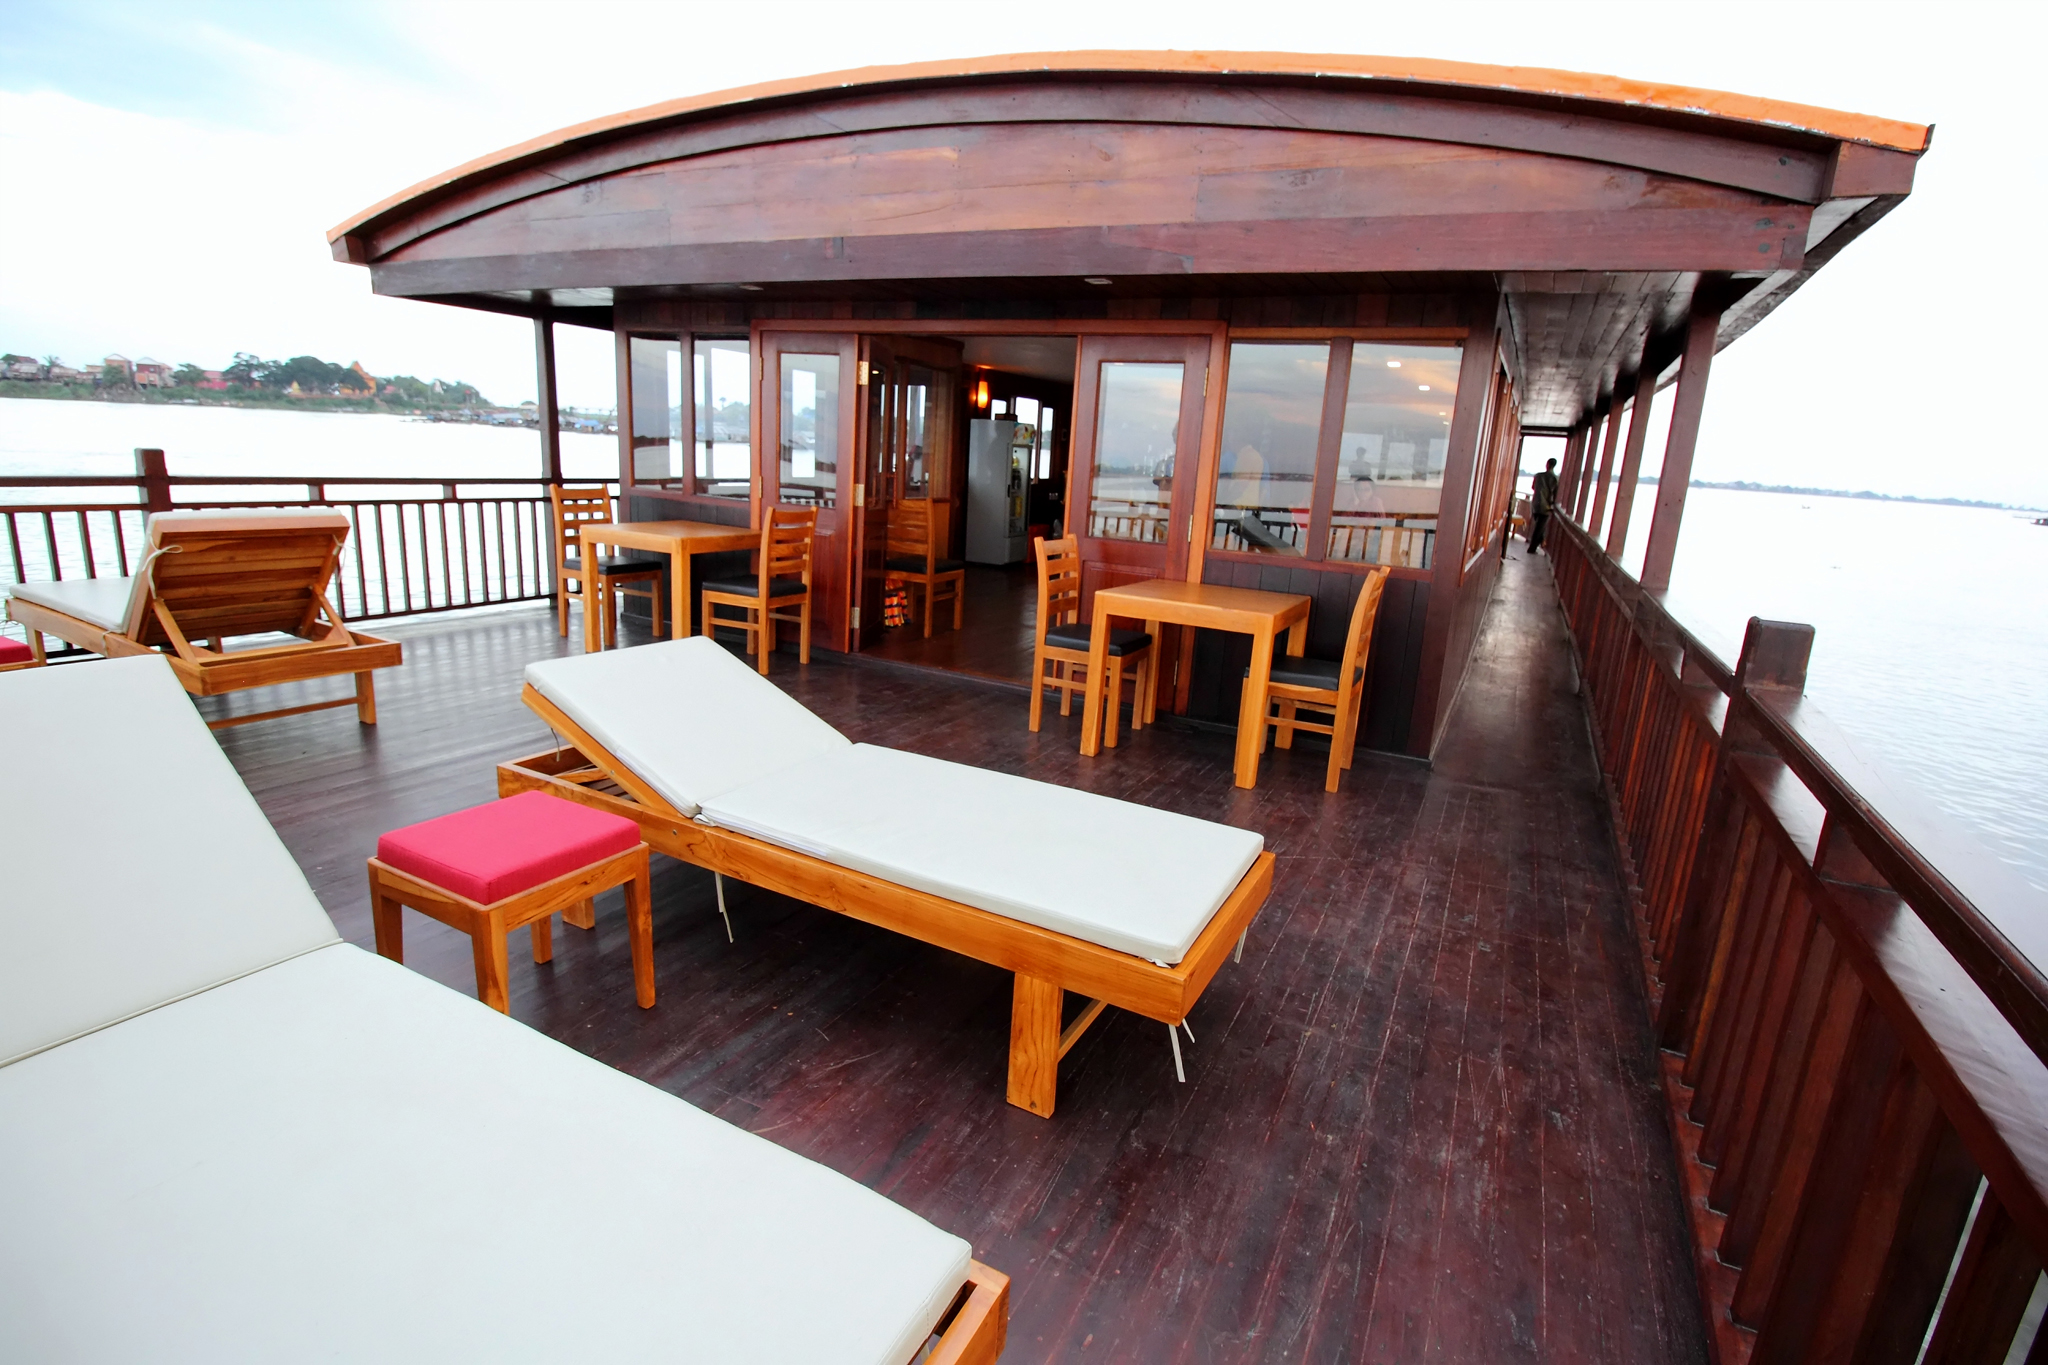 Restaurant and deck